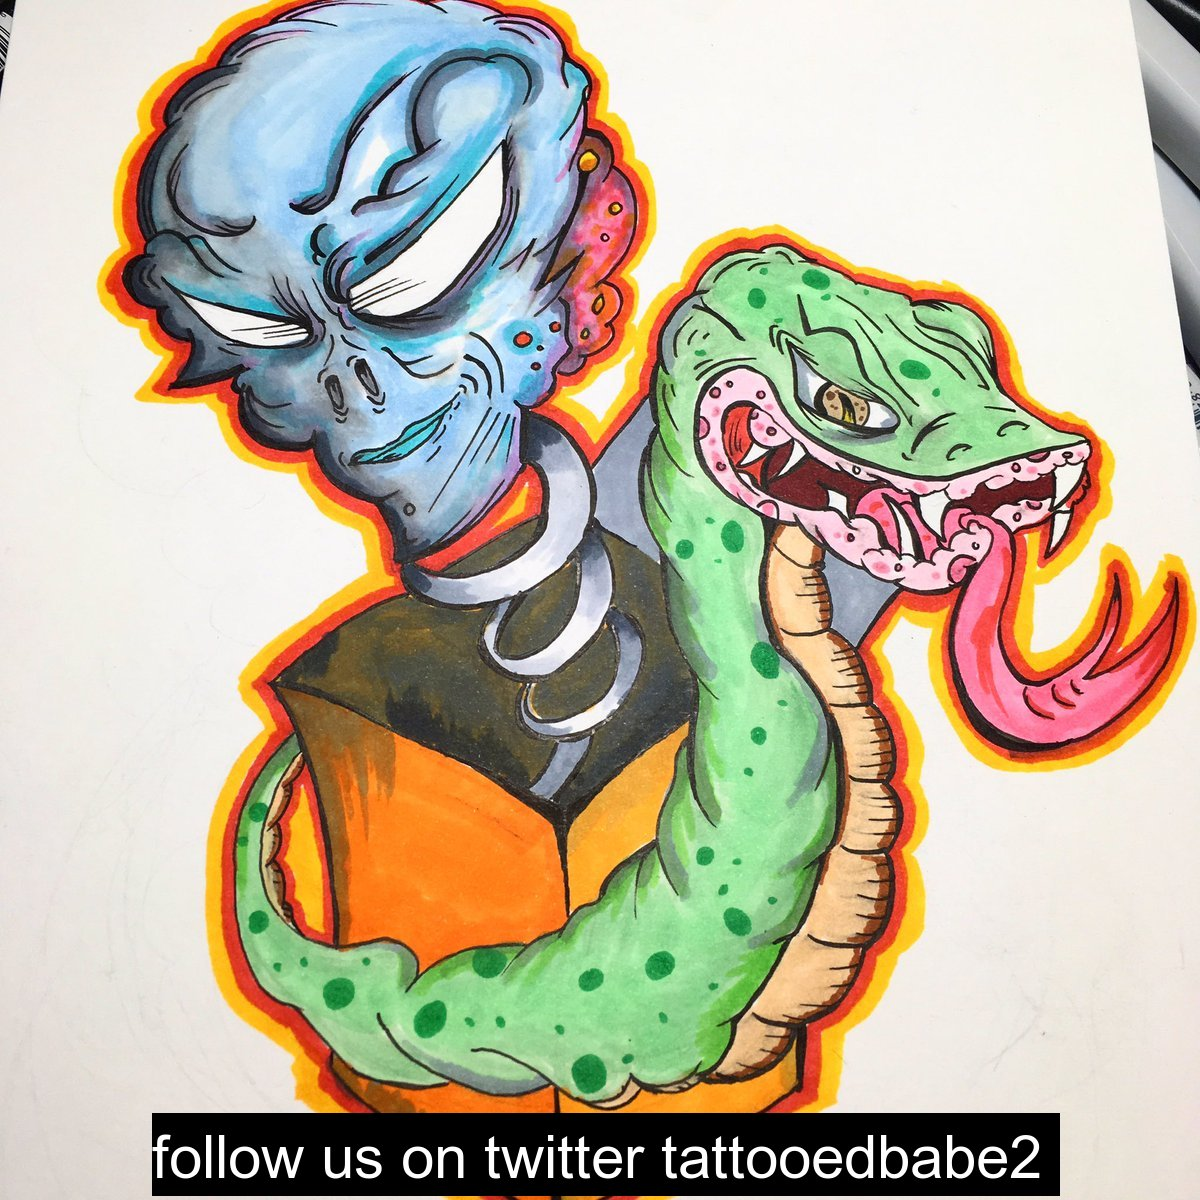 art artwork tattoo flash ink inking illustration cartoon alien snake colorful drawing